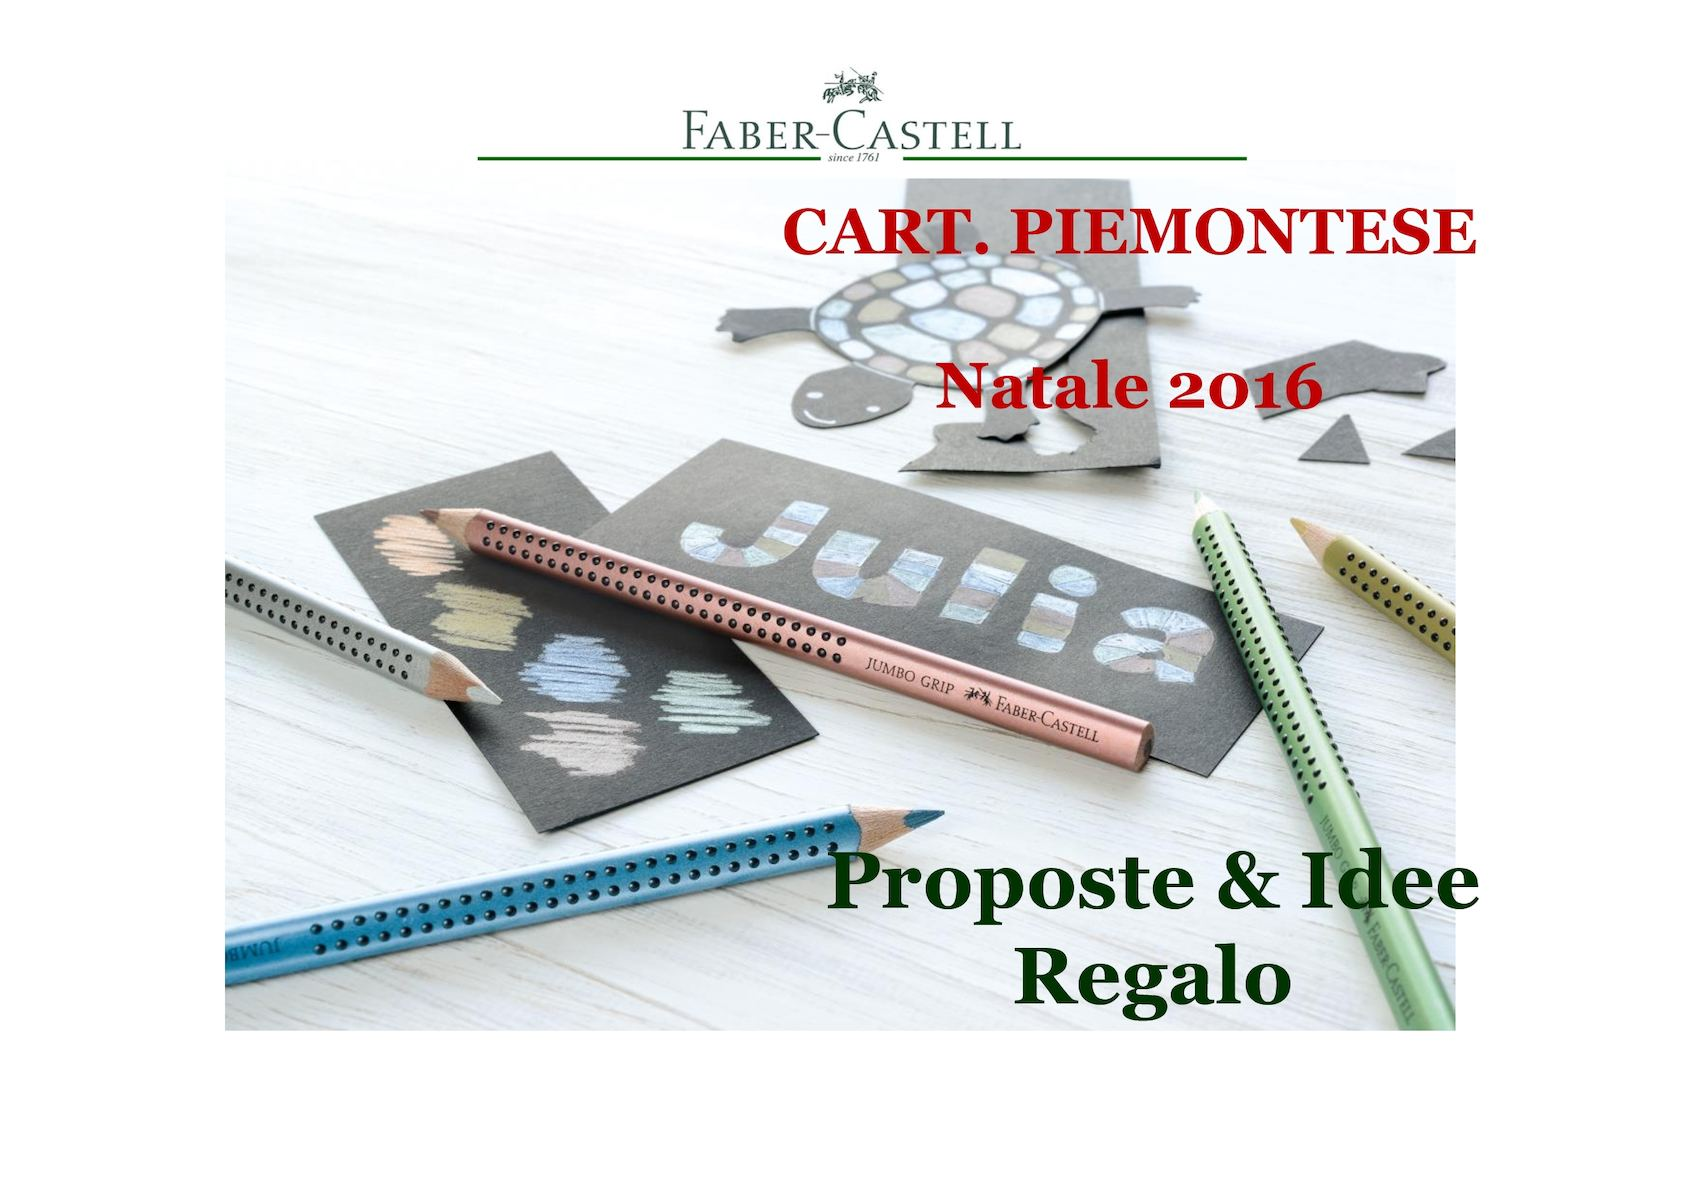 FABER CASTELL NATALE 2016